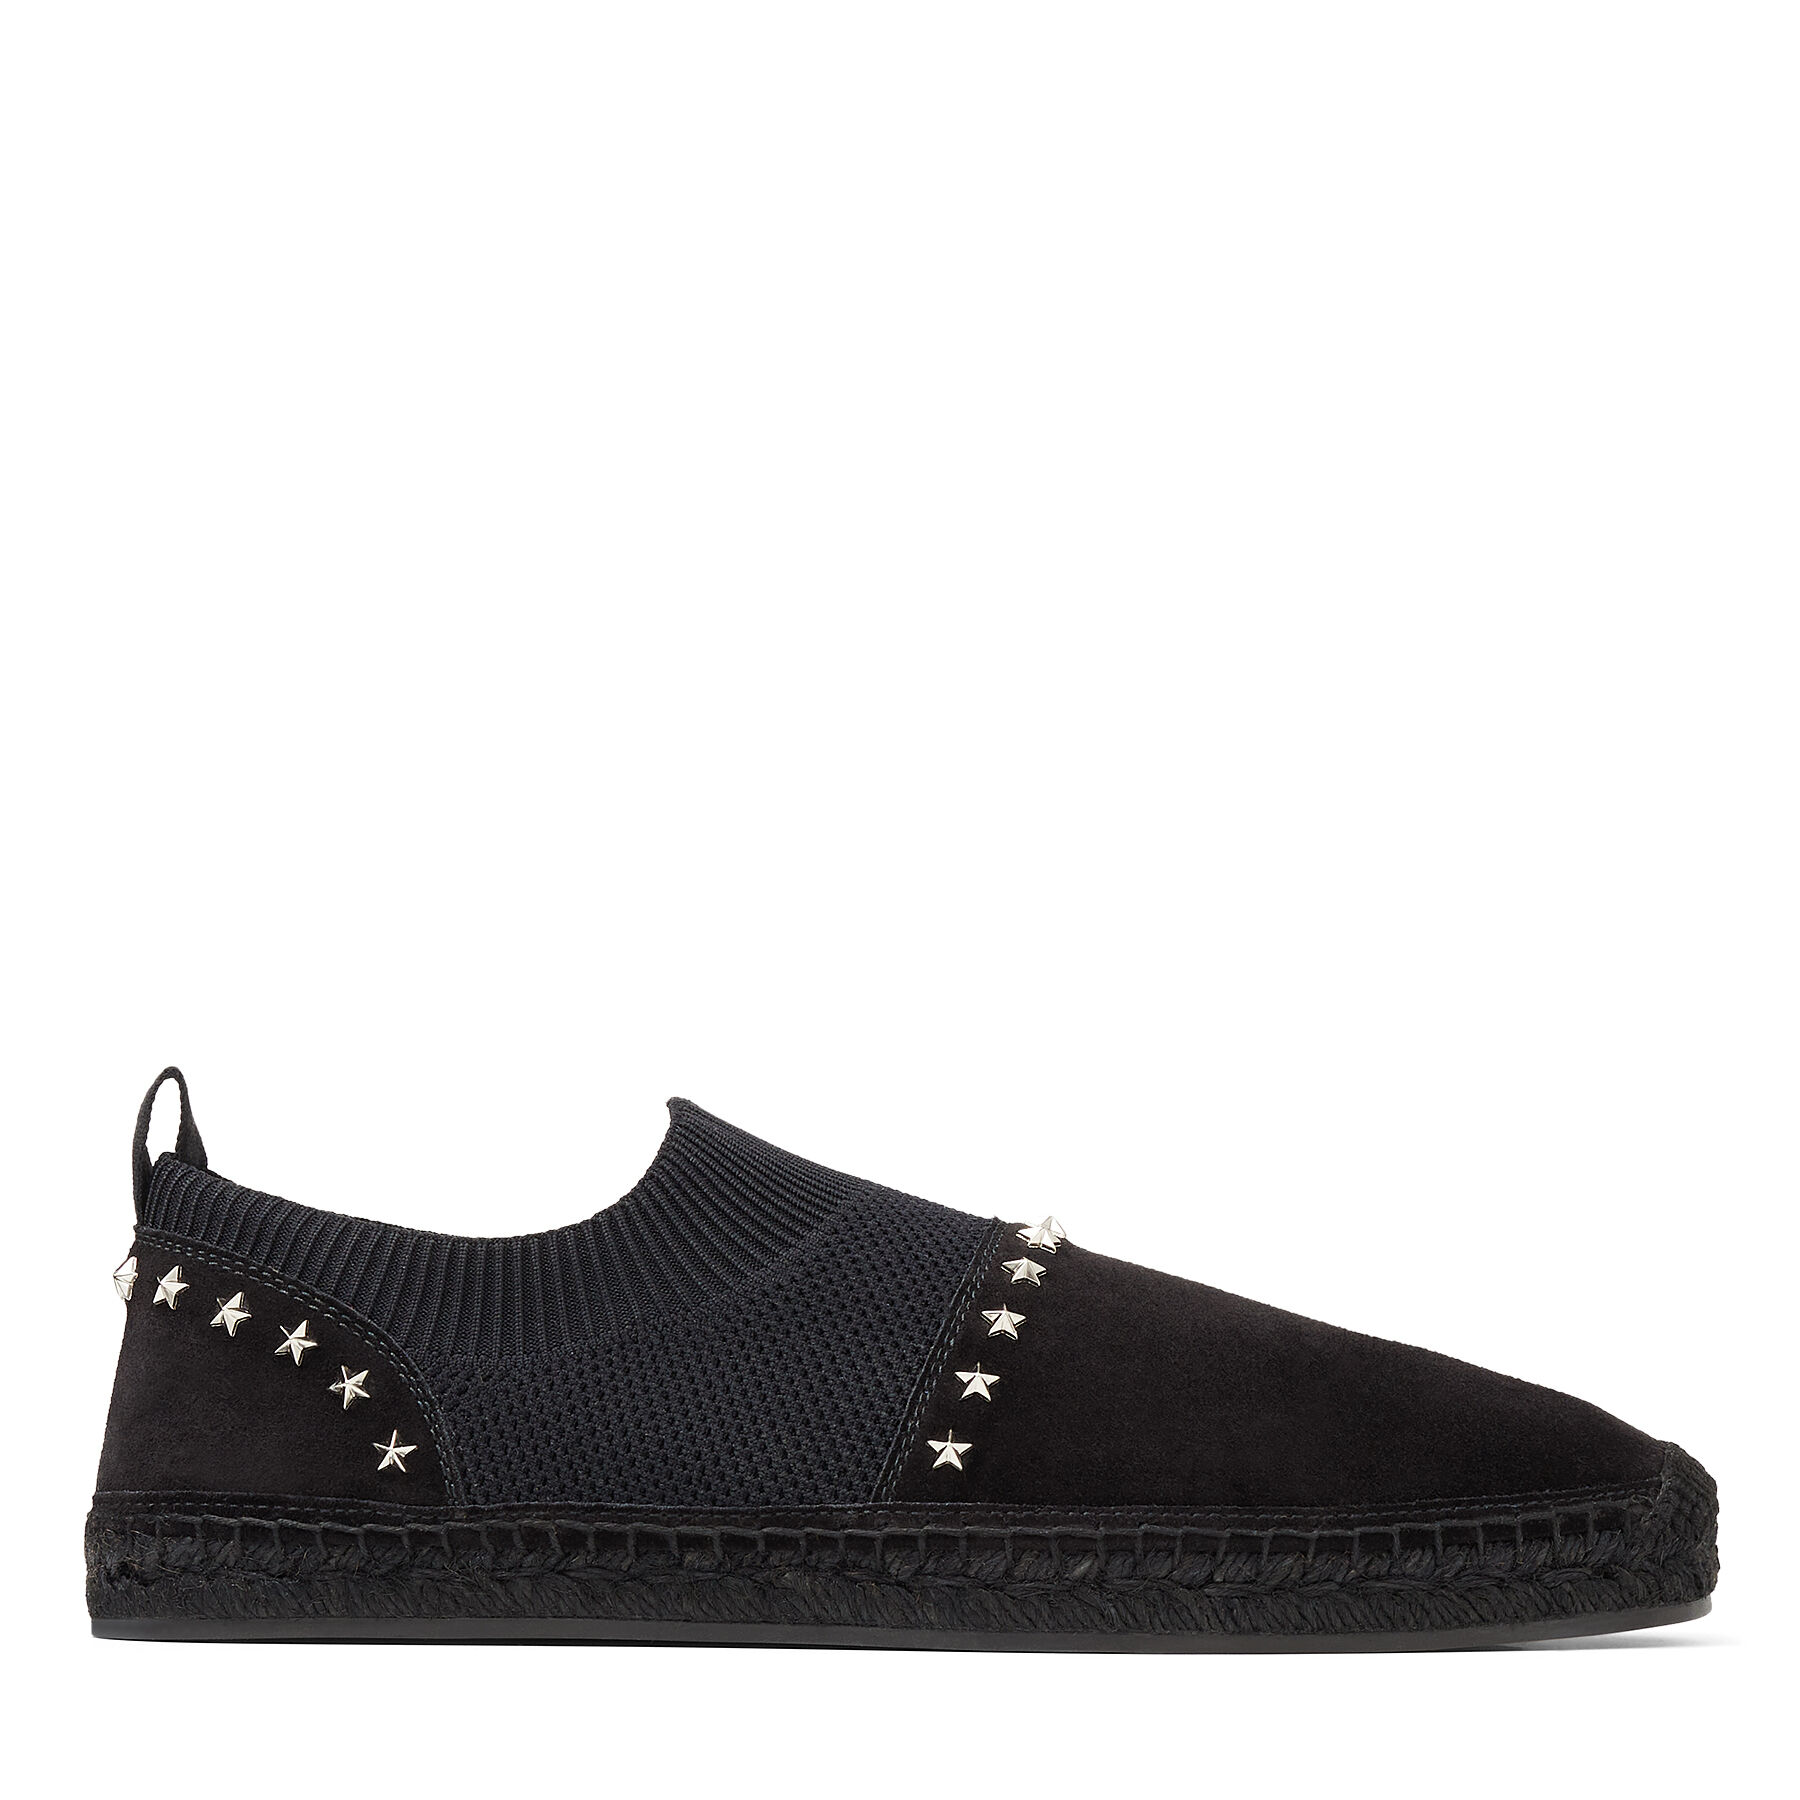 ENZO - Black Knit and Soft Suede Espadrilles with Star Embellishment